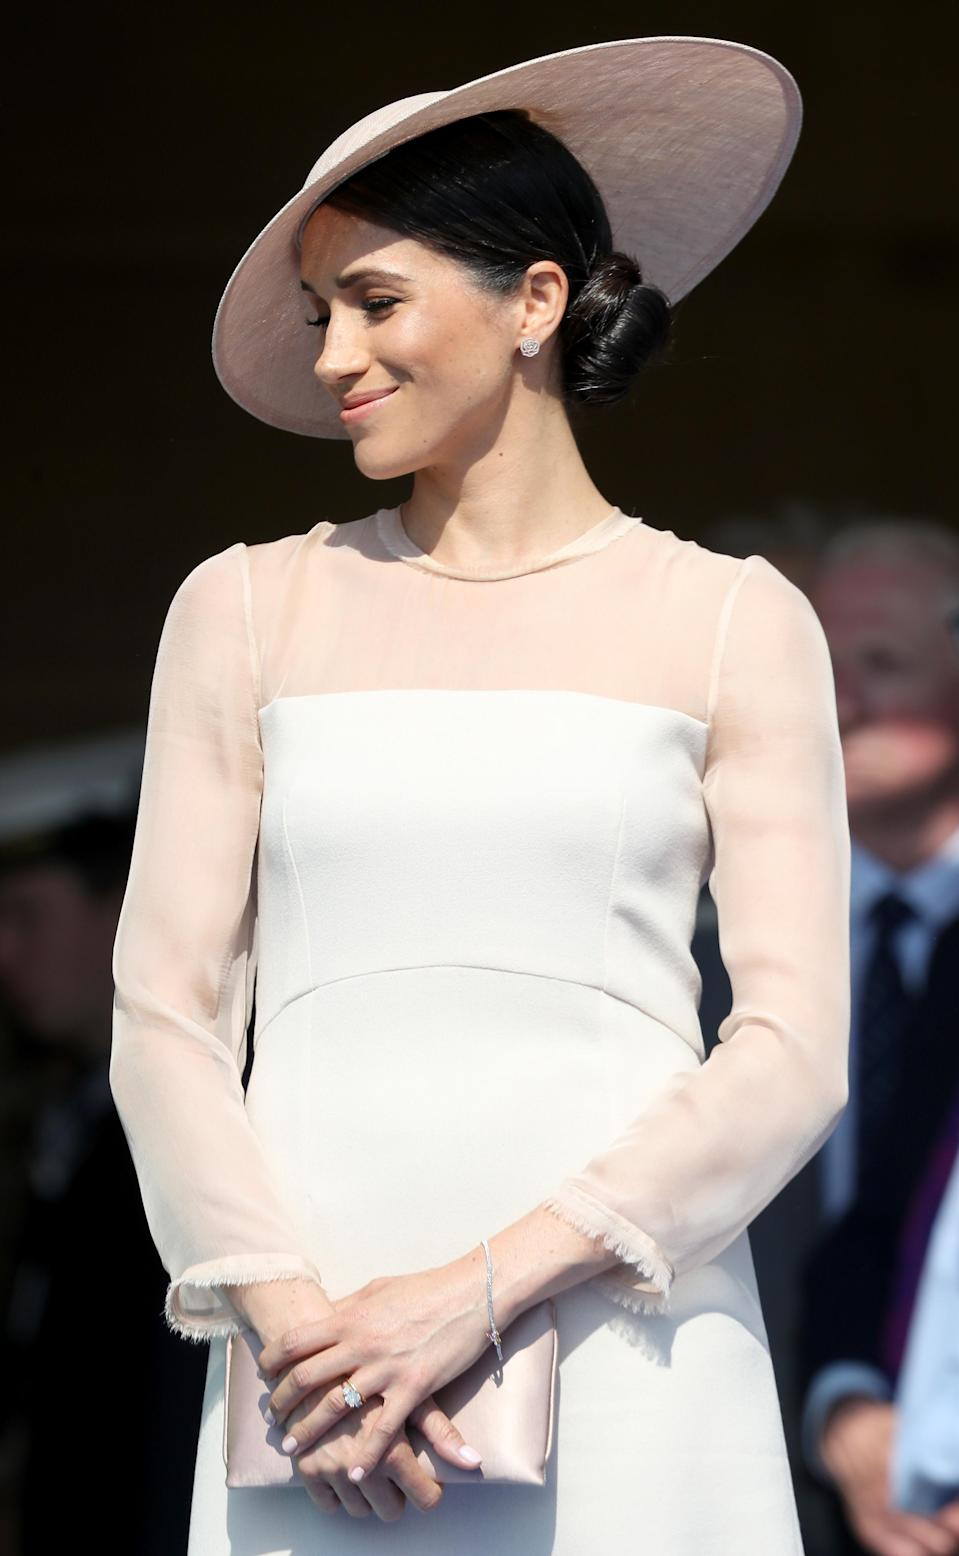 <p>After the wedding, the interest in the Duchess of Sussex only grew.<br><br>For her first appearance as royalty – Prince Charle's birthday garden party at Buckingham Palace – Meghan's selling power was proven after the website for the label she was wearing, Goat, crashed.<br><br>Her peachy dress by the British label then proceeded to sell out in minutes, and so the Meghan Effect was running at full steam ahead…<br>[Photo: Getty] </p>